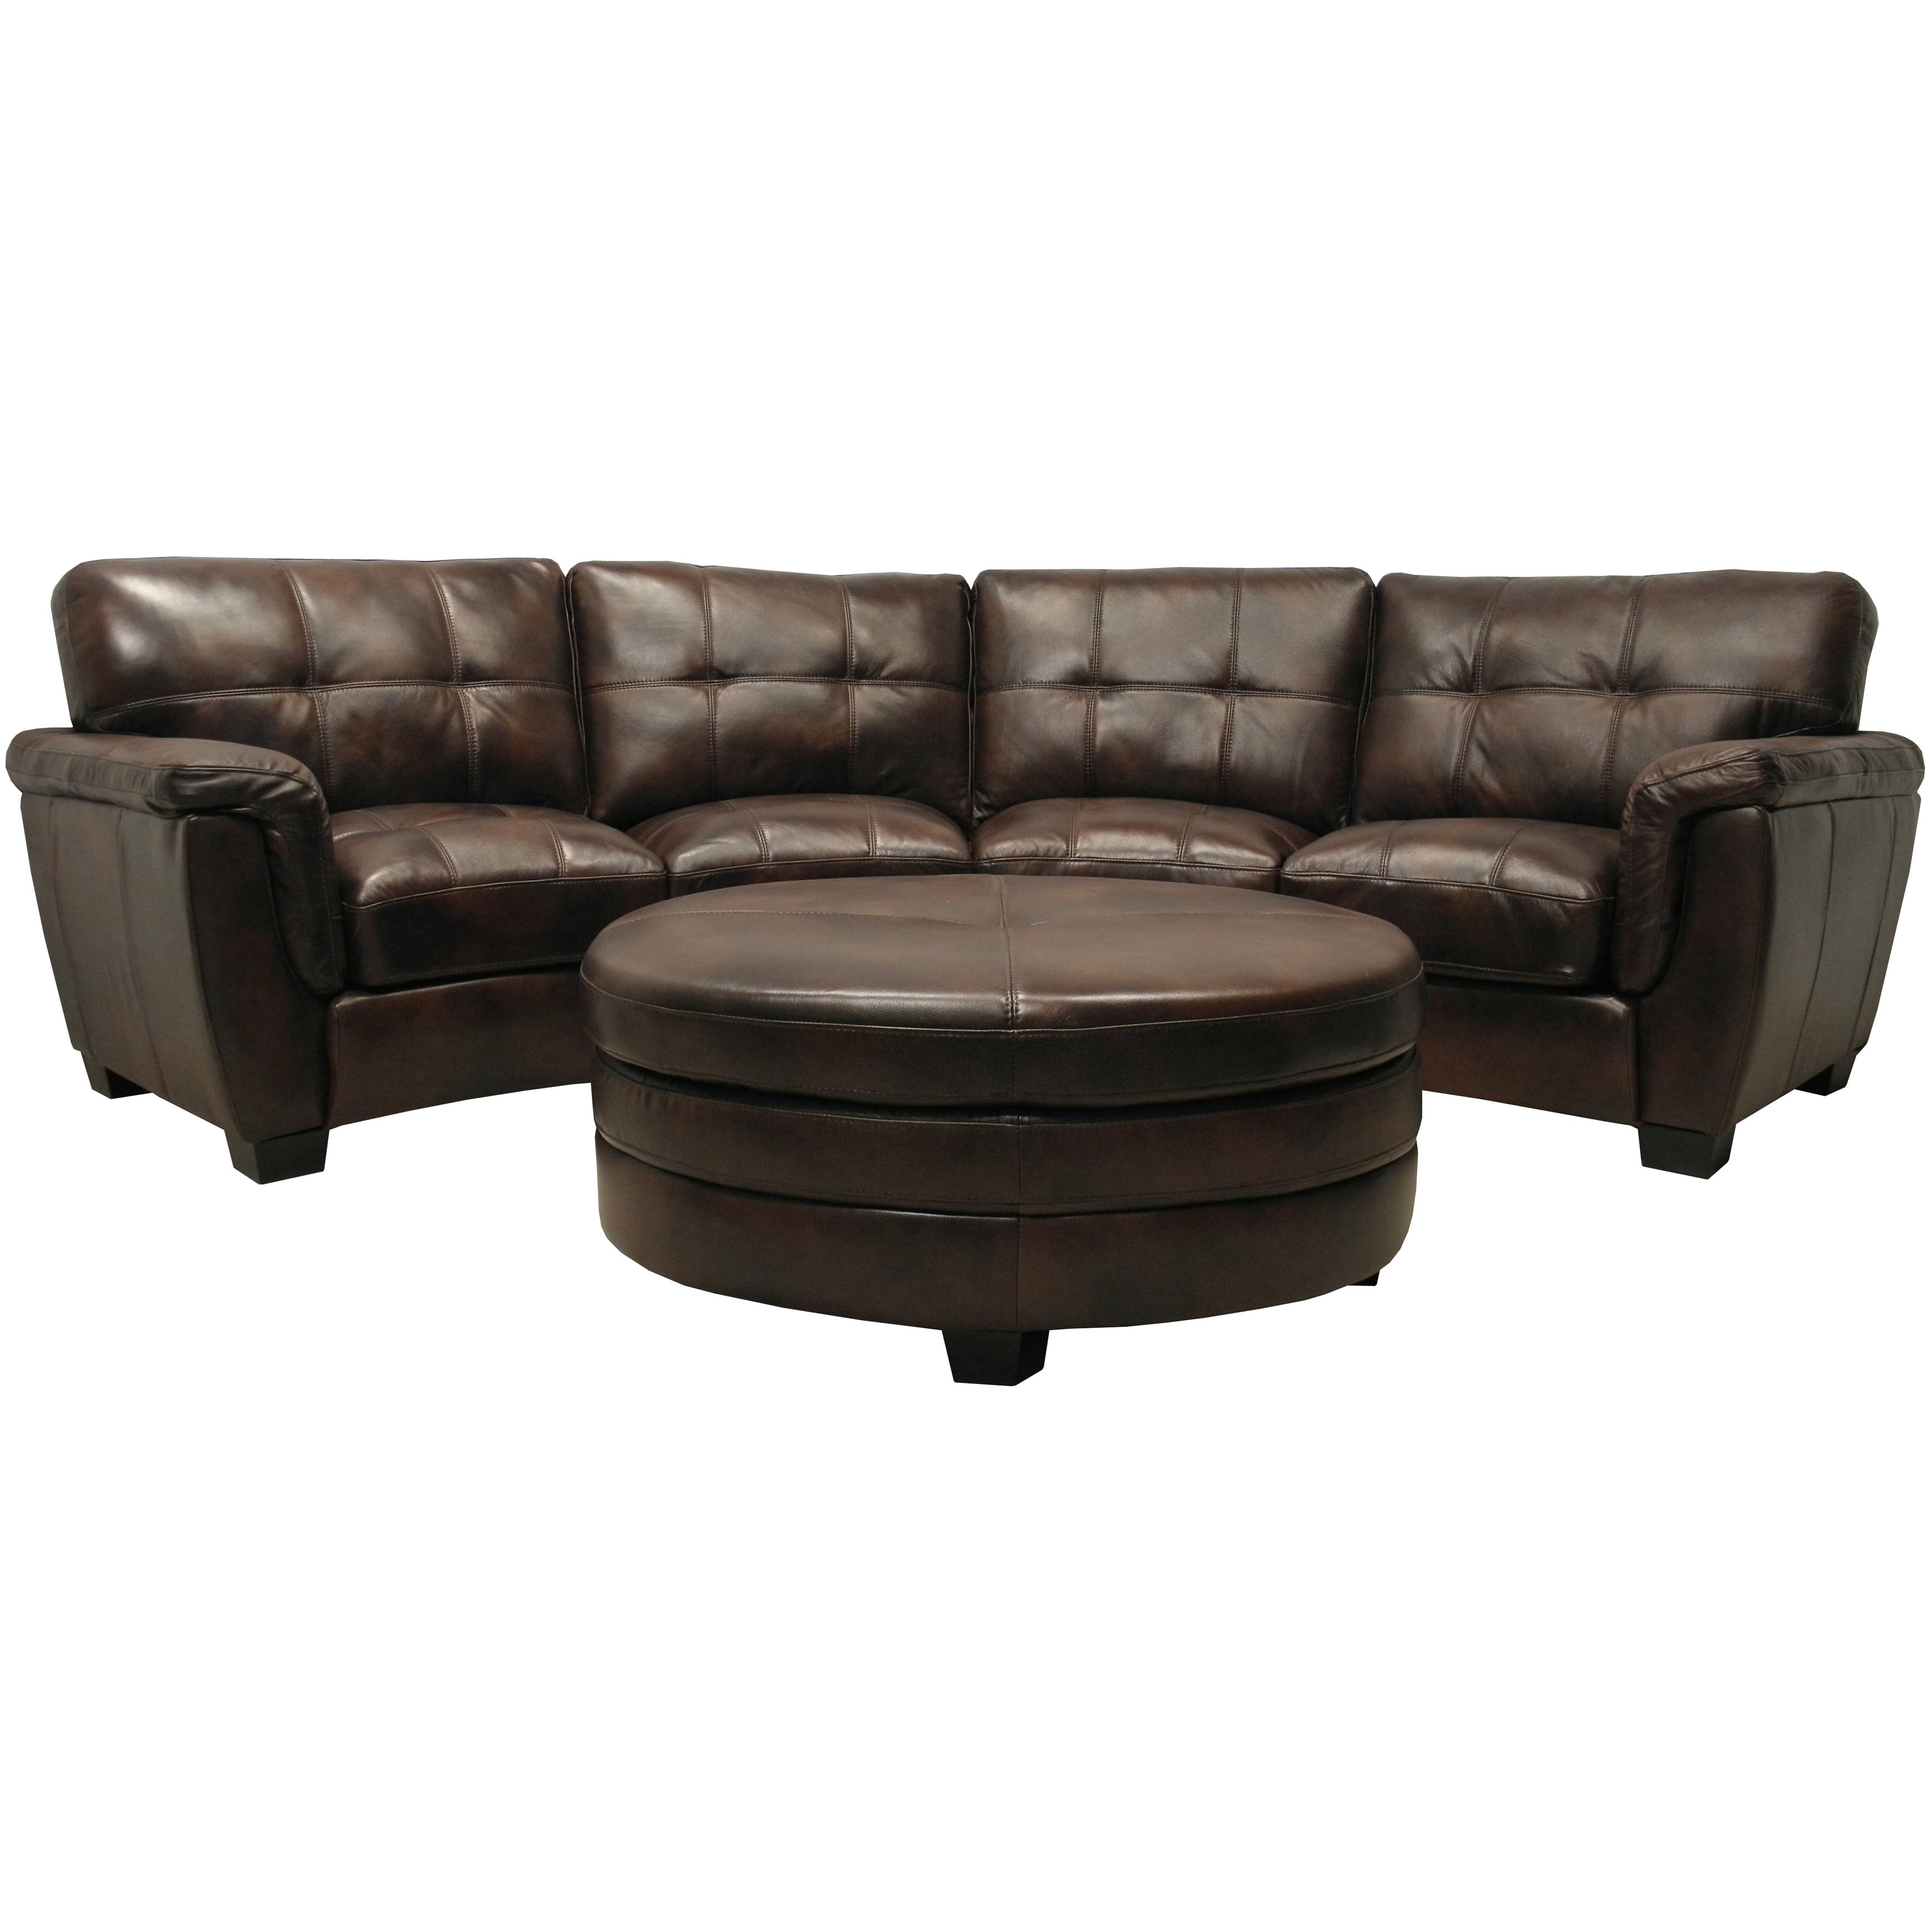 Shop Beck Chocolate Brown Italian Leather Curved Sectional Sofa and ...